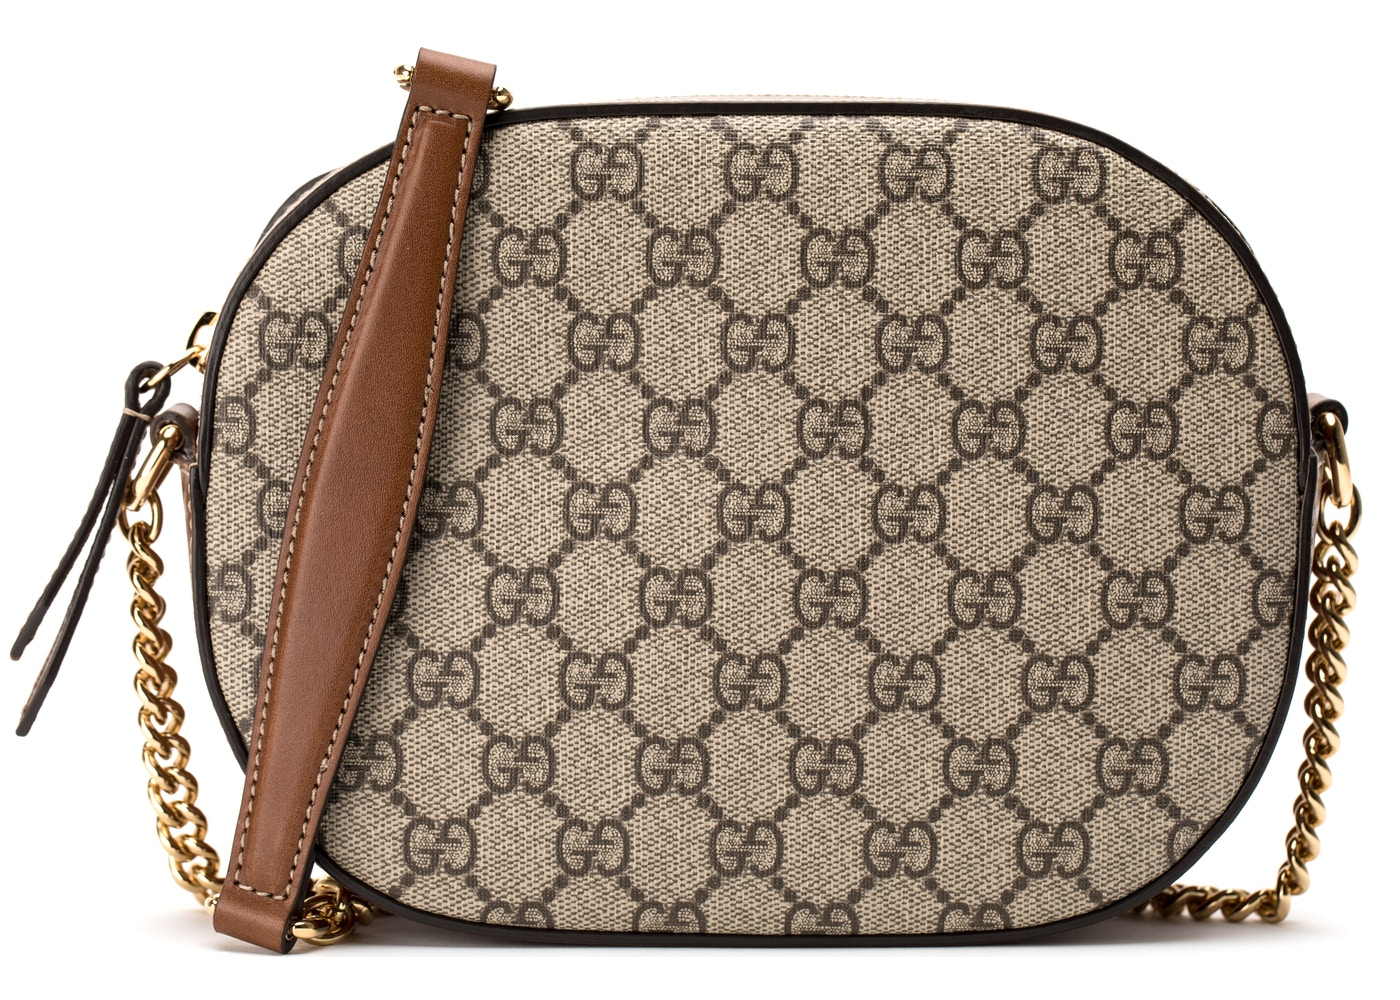 e6adc3d93b0 Gucci Crossbody Chain Bag GG Supreme Mini Brown. GG Supreme Mini Brown